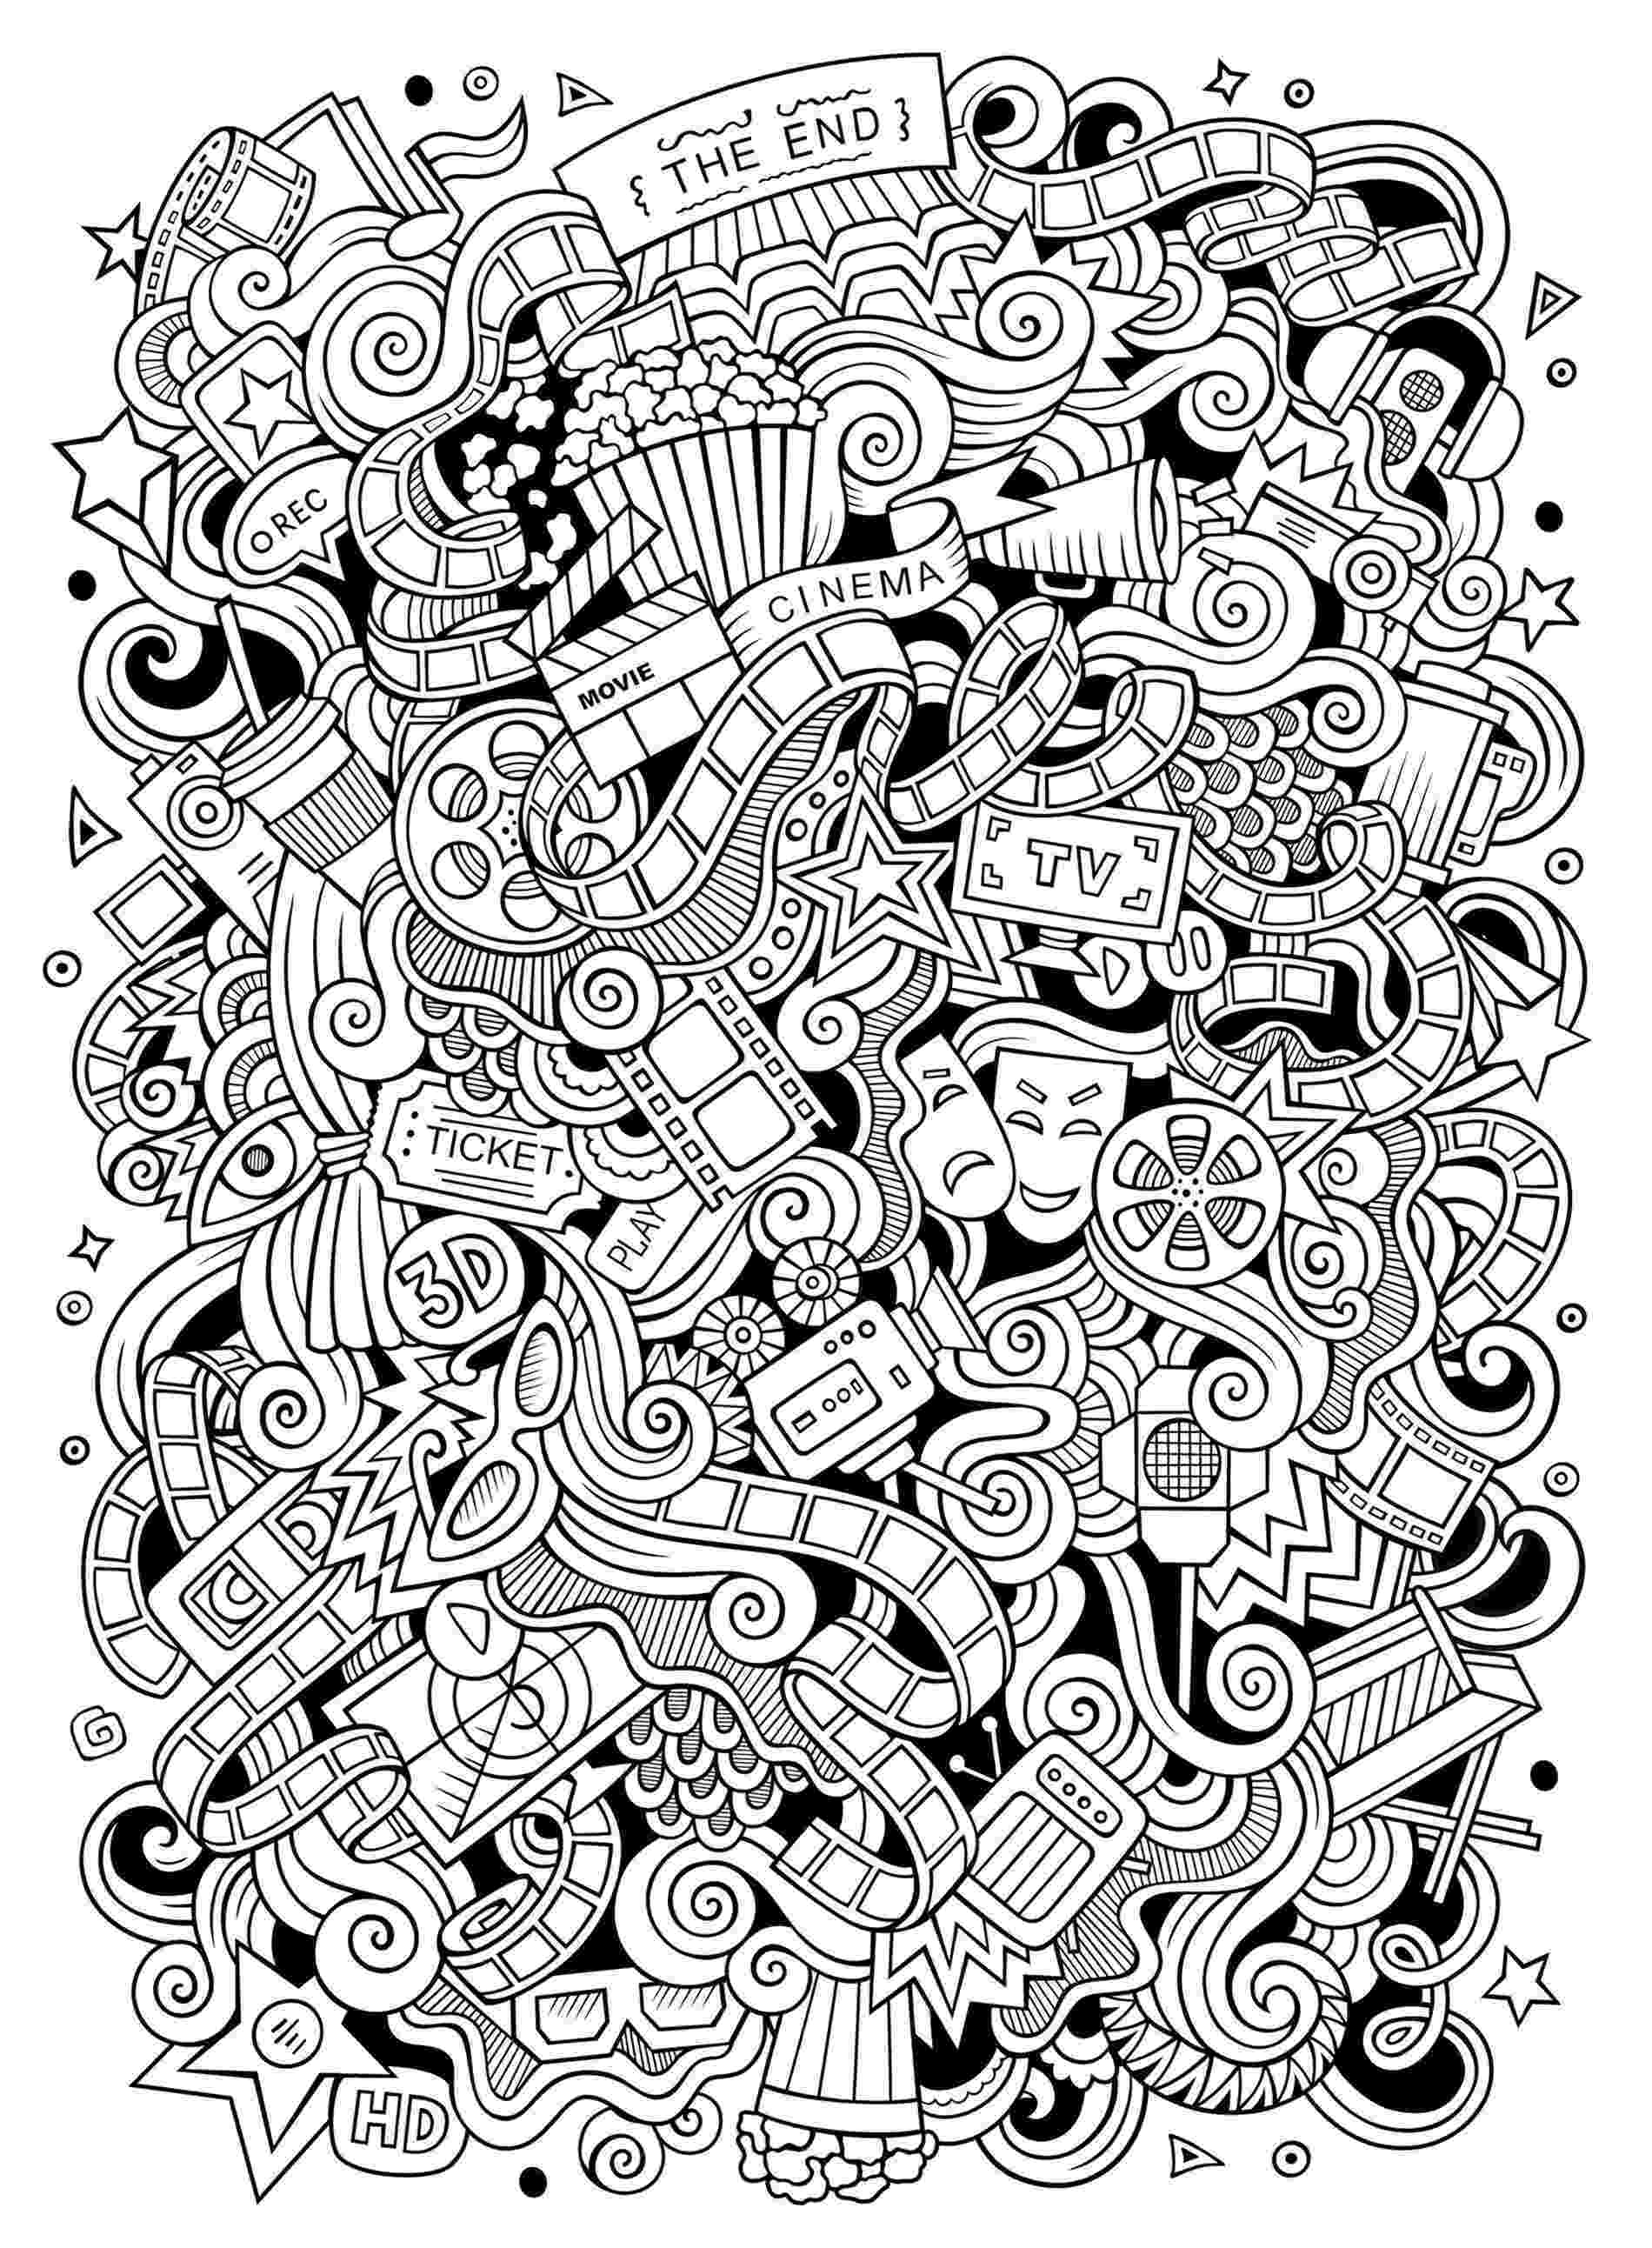 doodle art colouring doodle art to print for free doodle art kids coloring pages colouring art doodle